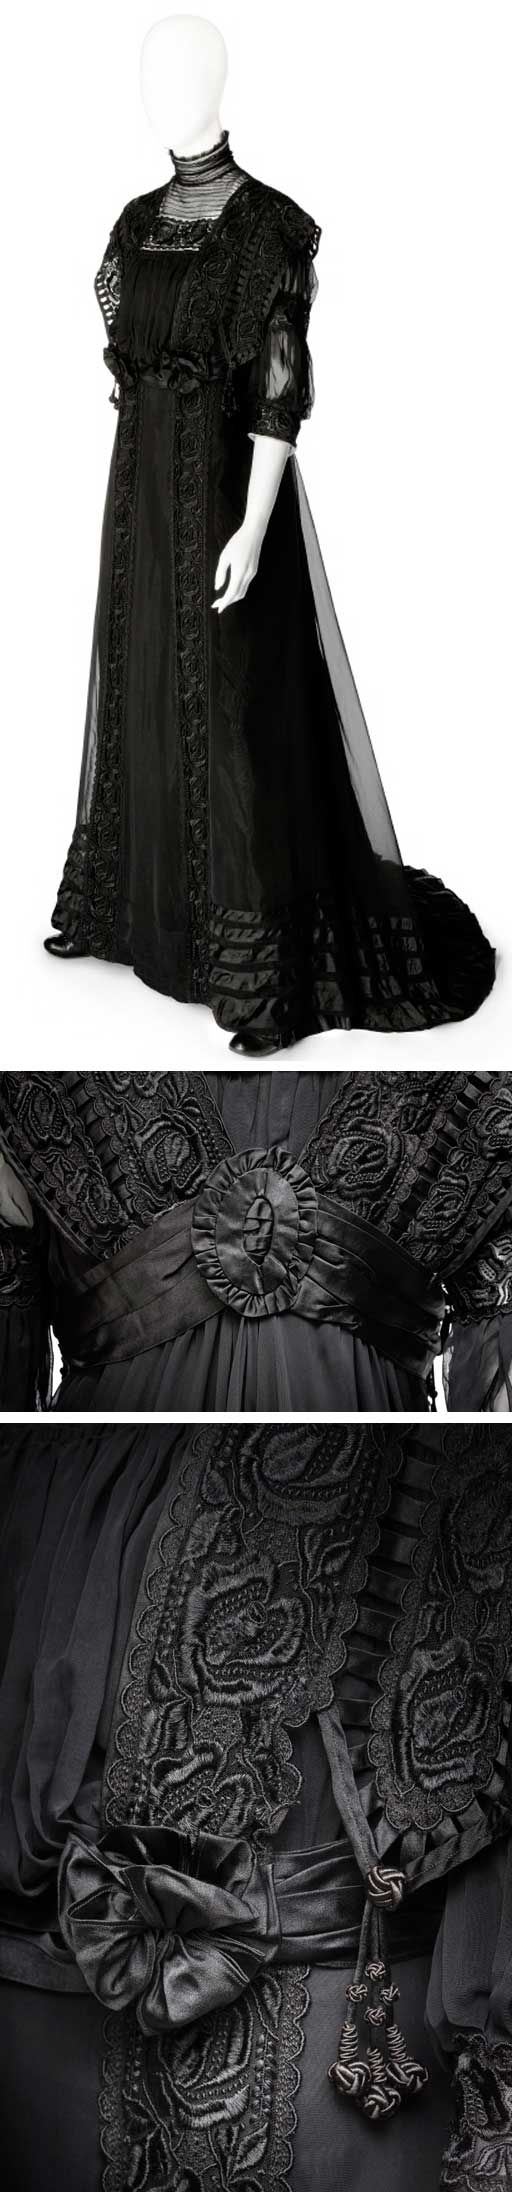 Mourning gown, ca. 1910. Silk and lace. Hallwyl Museum, Sweden